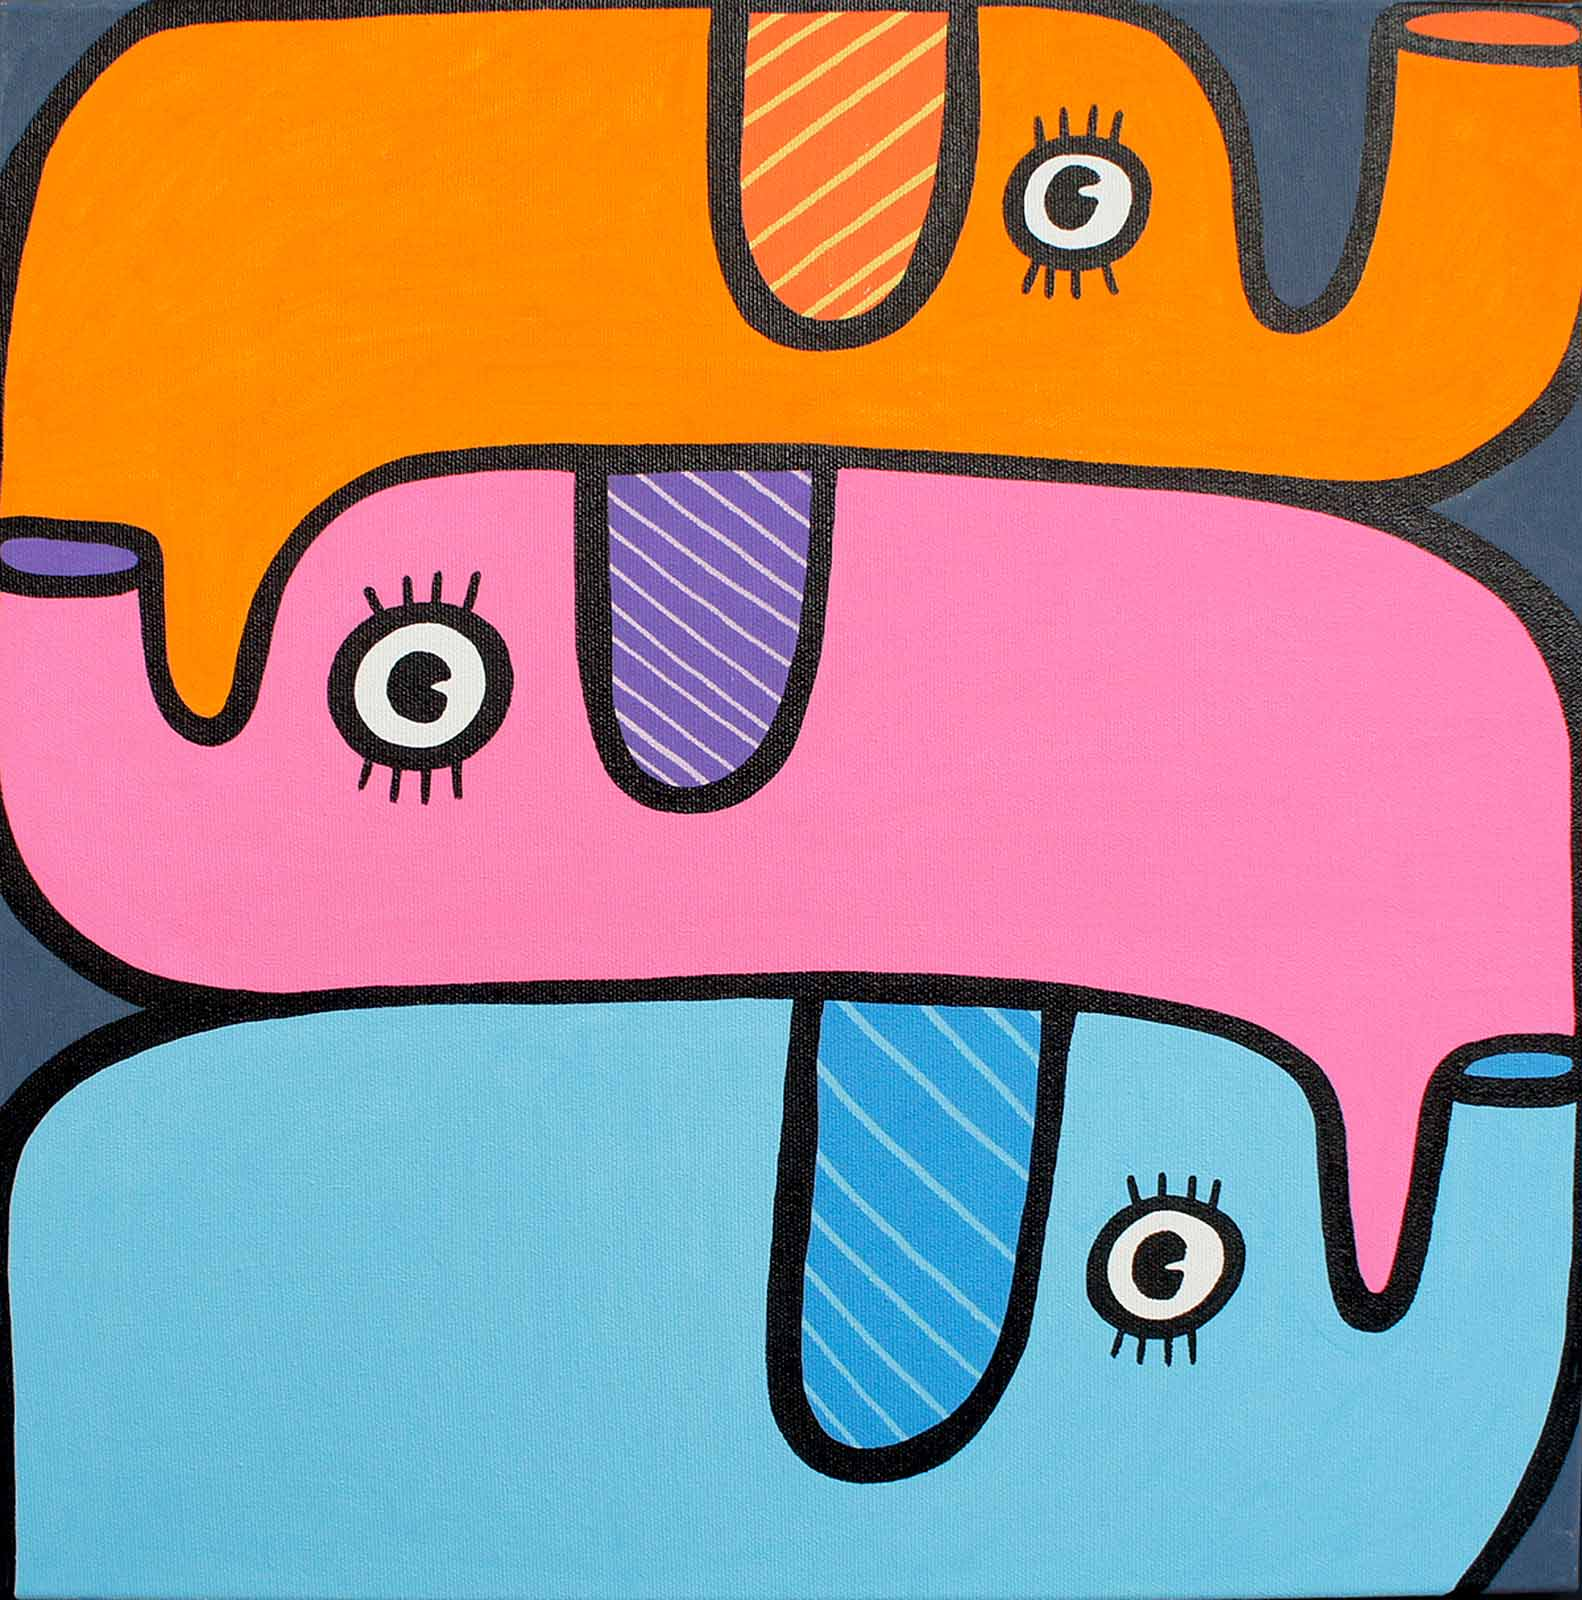 Three Elephants, Kev Munday